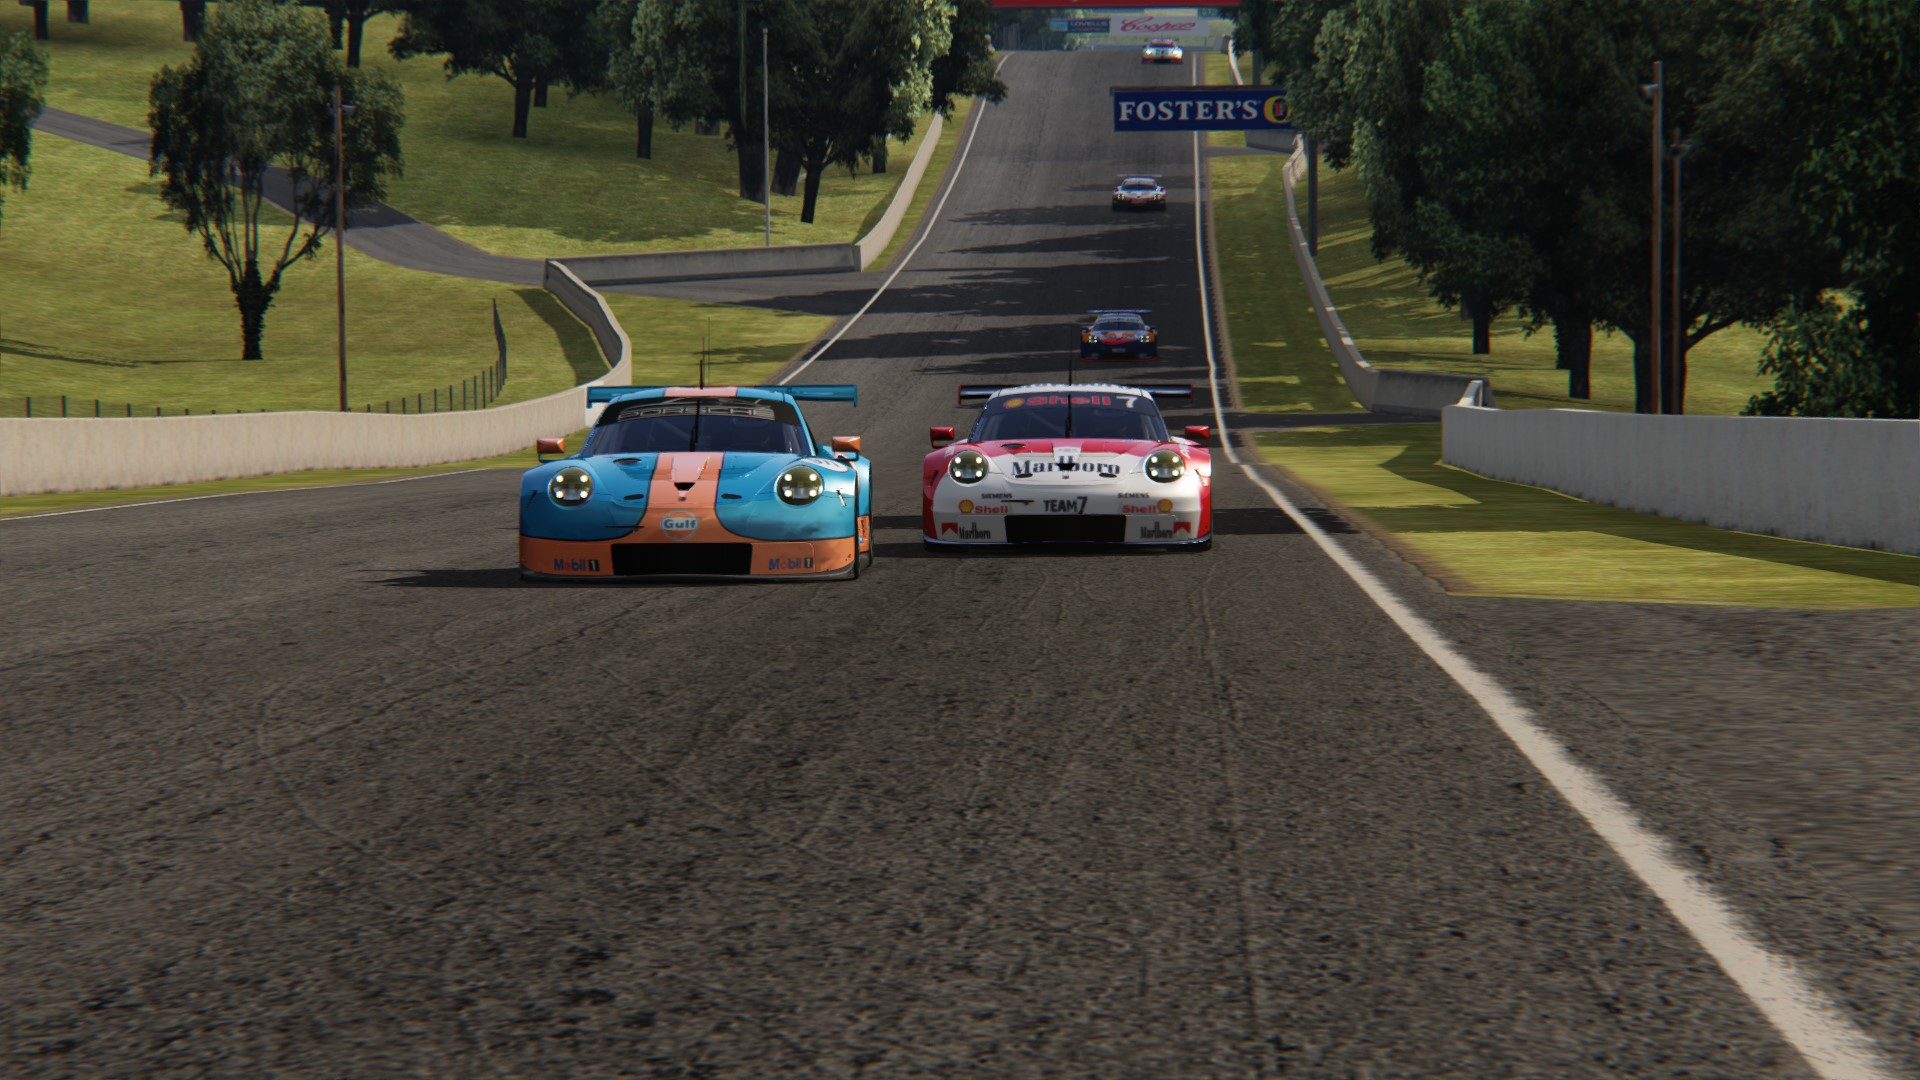 Screenshot_ks_porsche_911_rsr_2017_bathurst_30-7-117-2-33-19.jpg